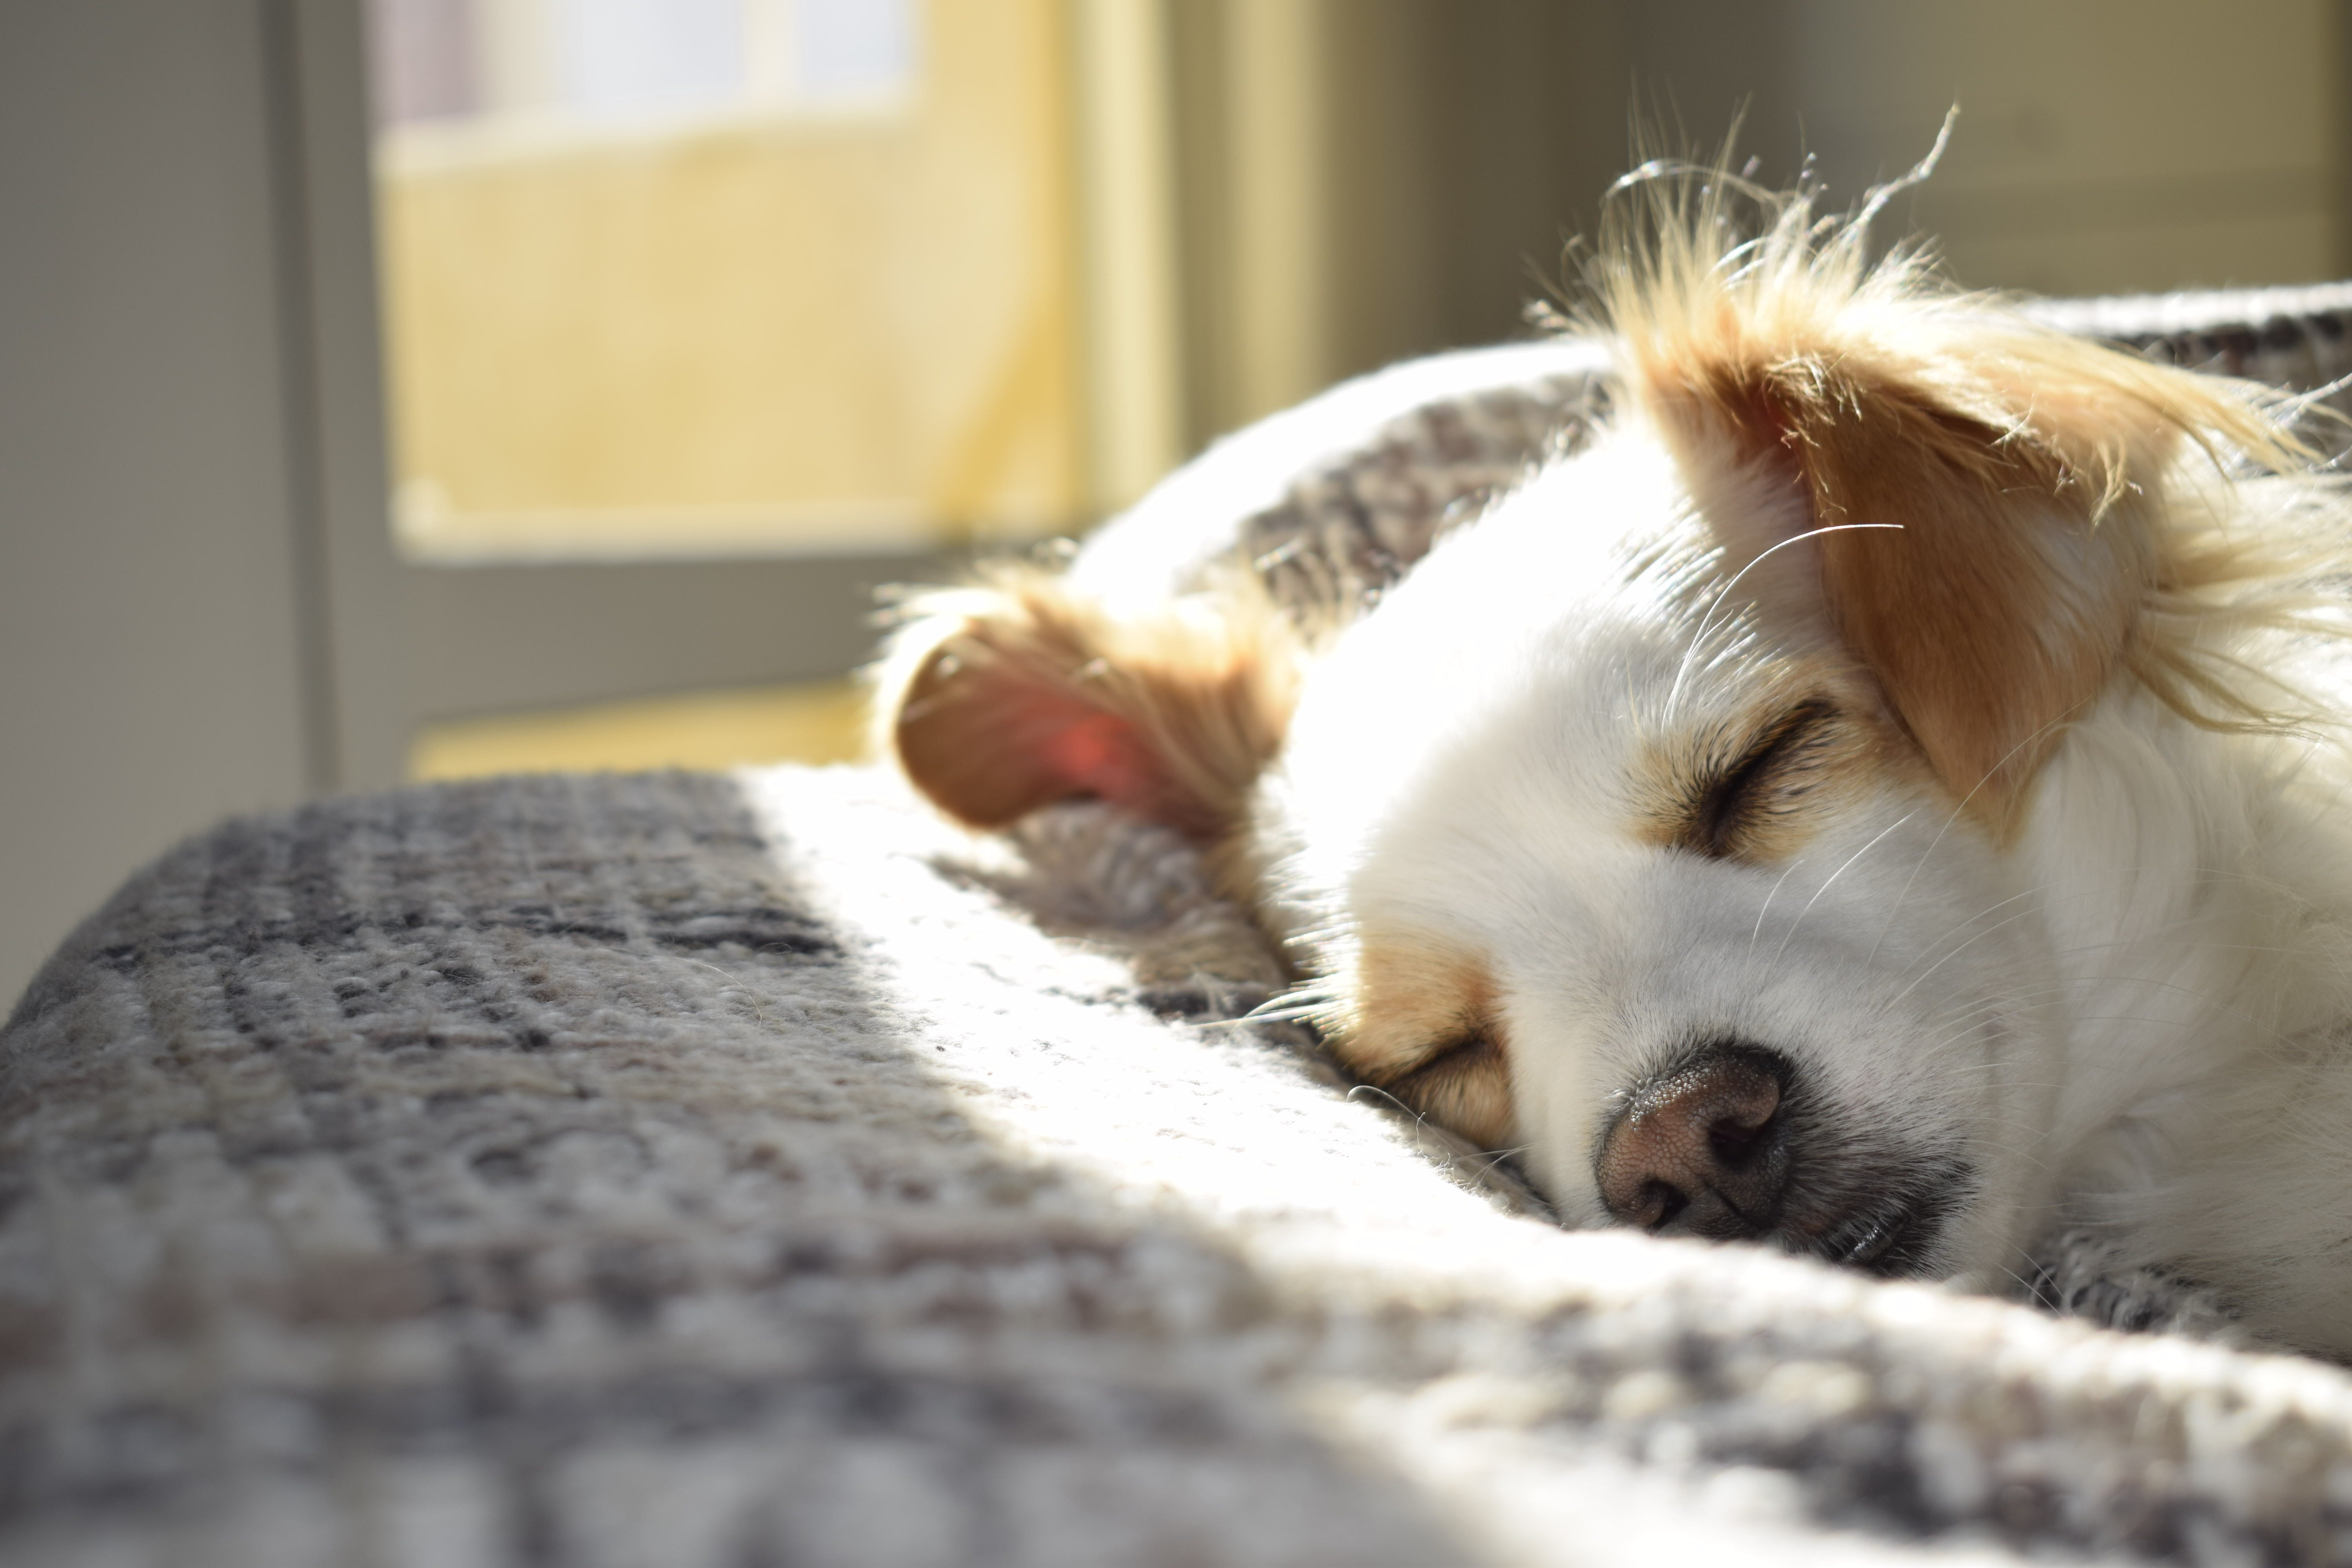 Closeup Photography of Adult Short-coated Tan and White Dog Sleeping on Gray Textile at Daytime